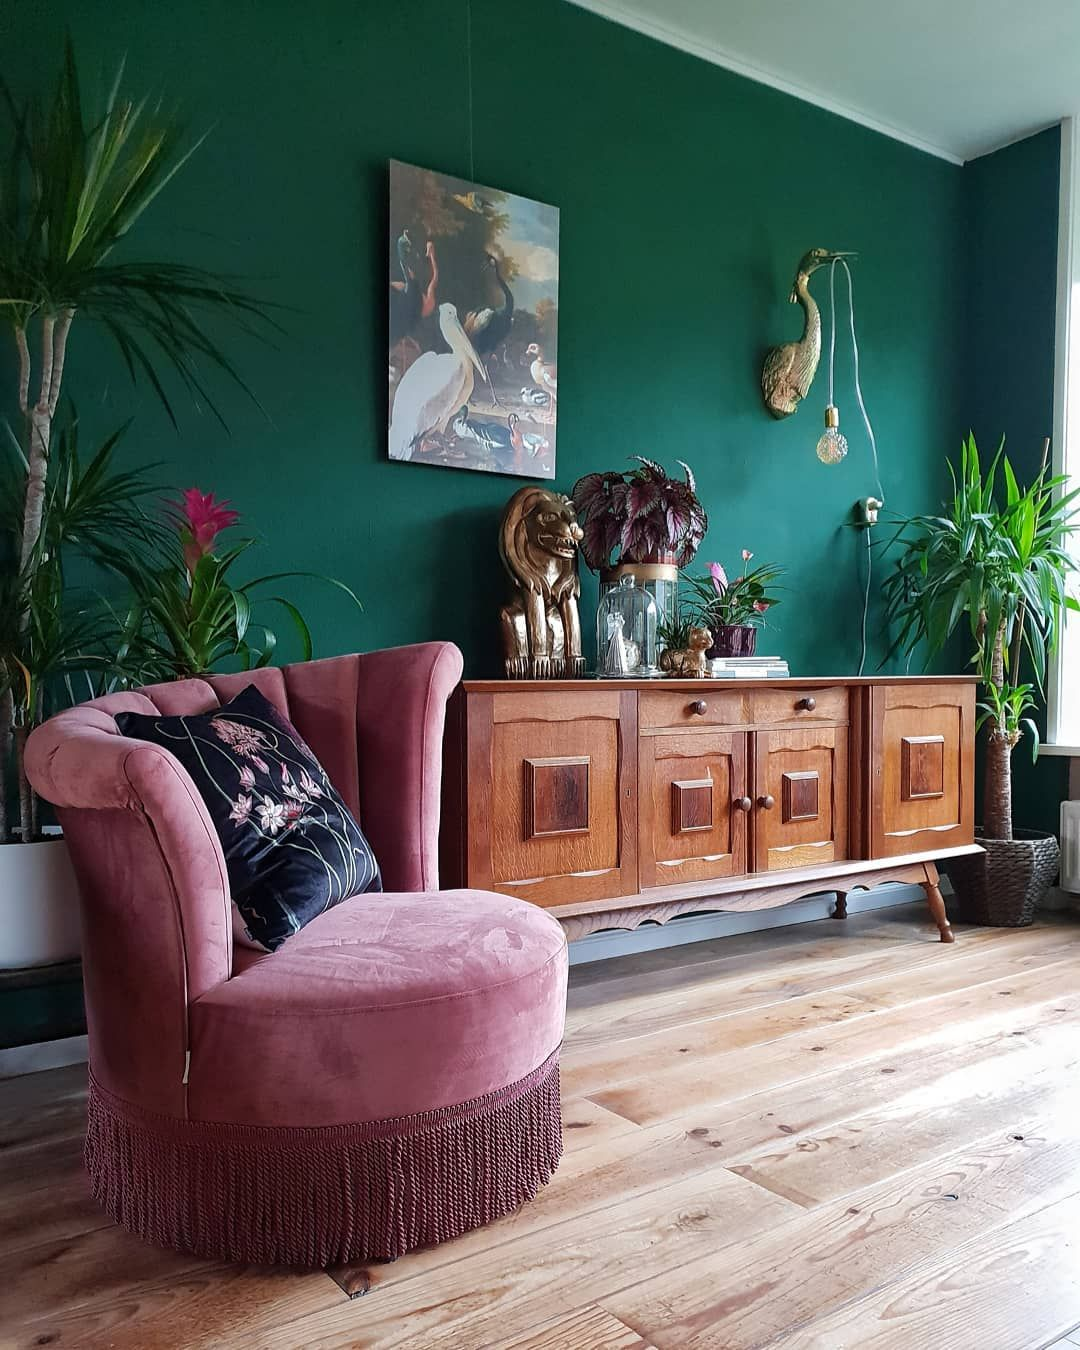 Woonkamer Living Room Eclectic Vintage Green Pink Bold Interior Design Velvet Fauteuil Chair Plants I Decor Home Decor House Interior